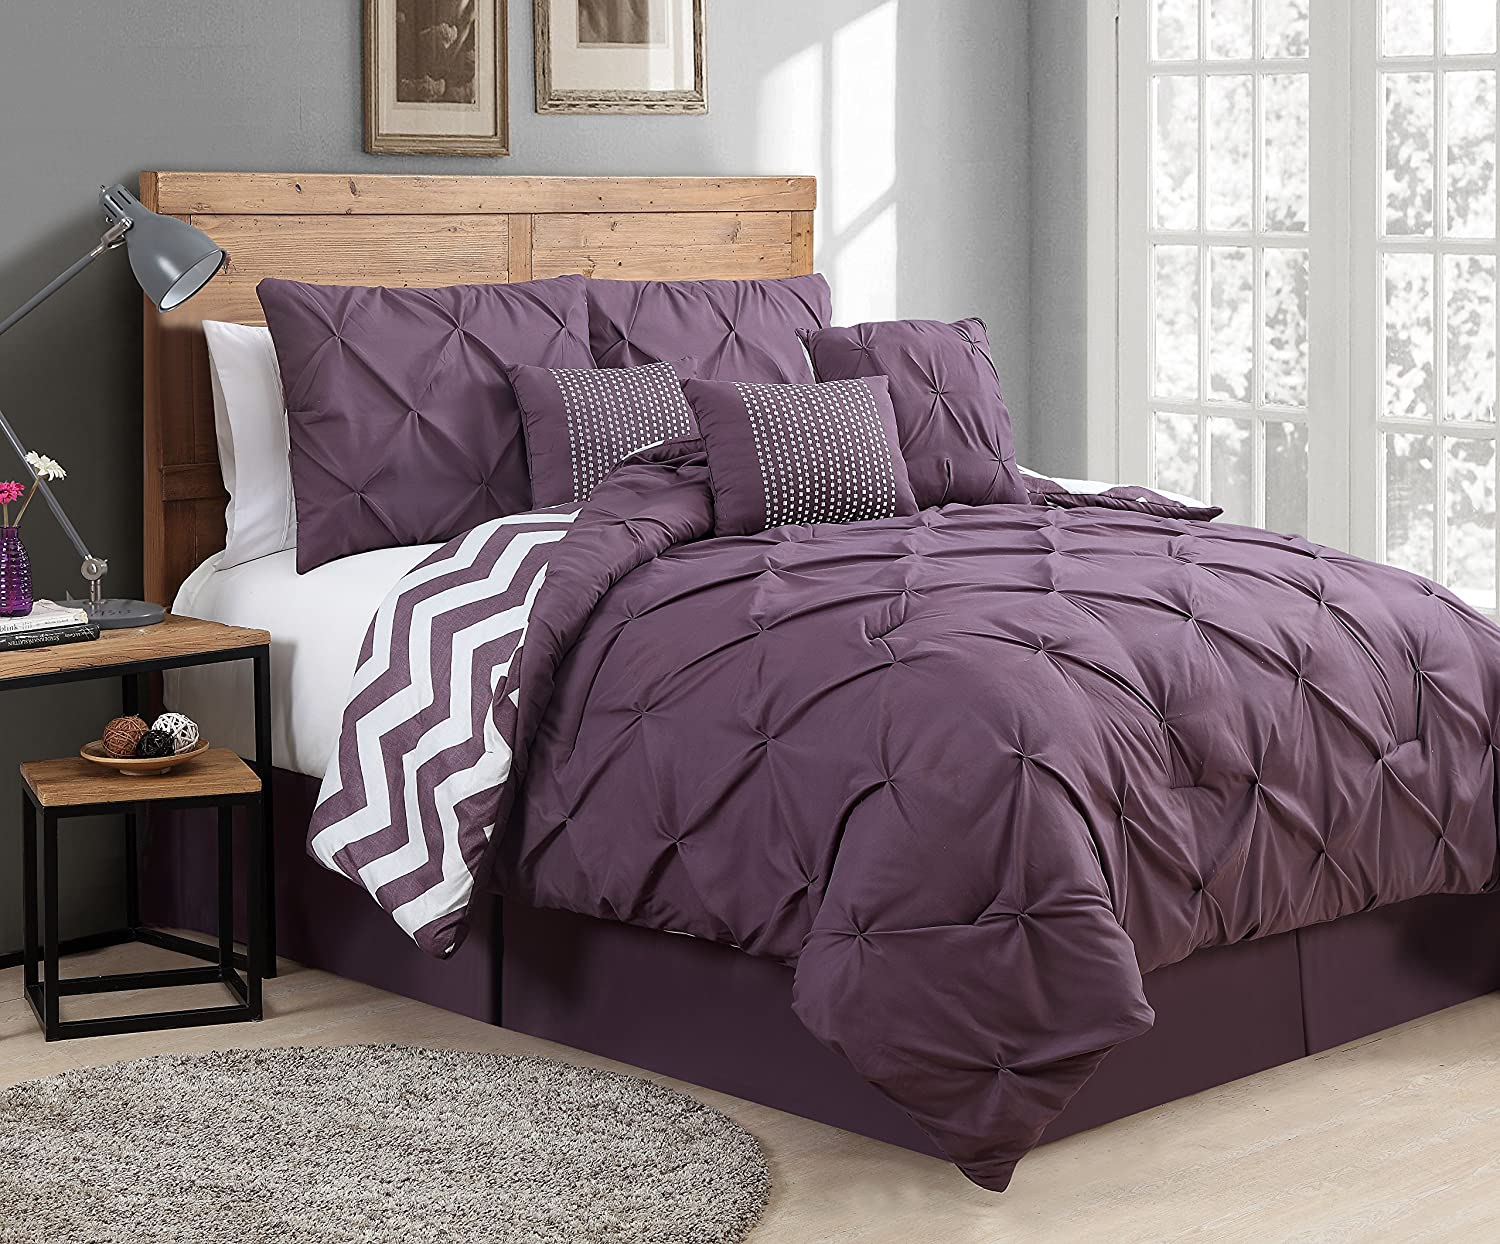 Avondale Manor 7-Piece Venice Pinch Pleat, King, Plum